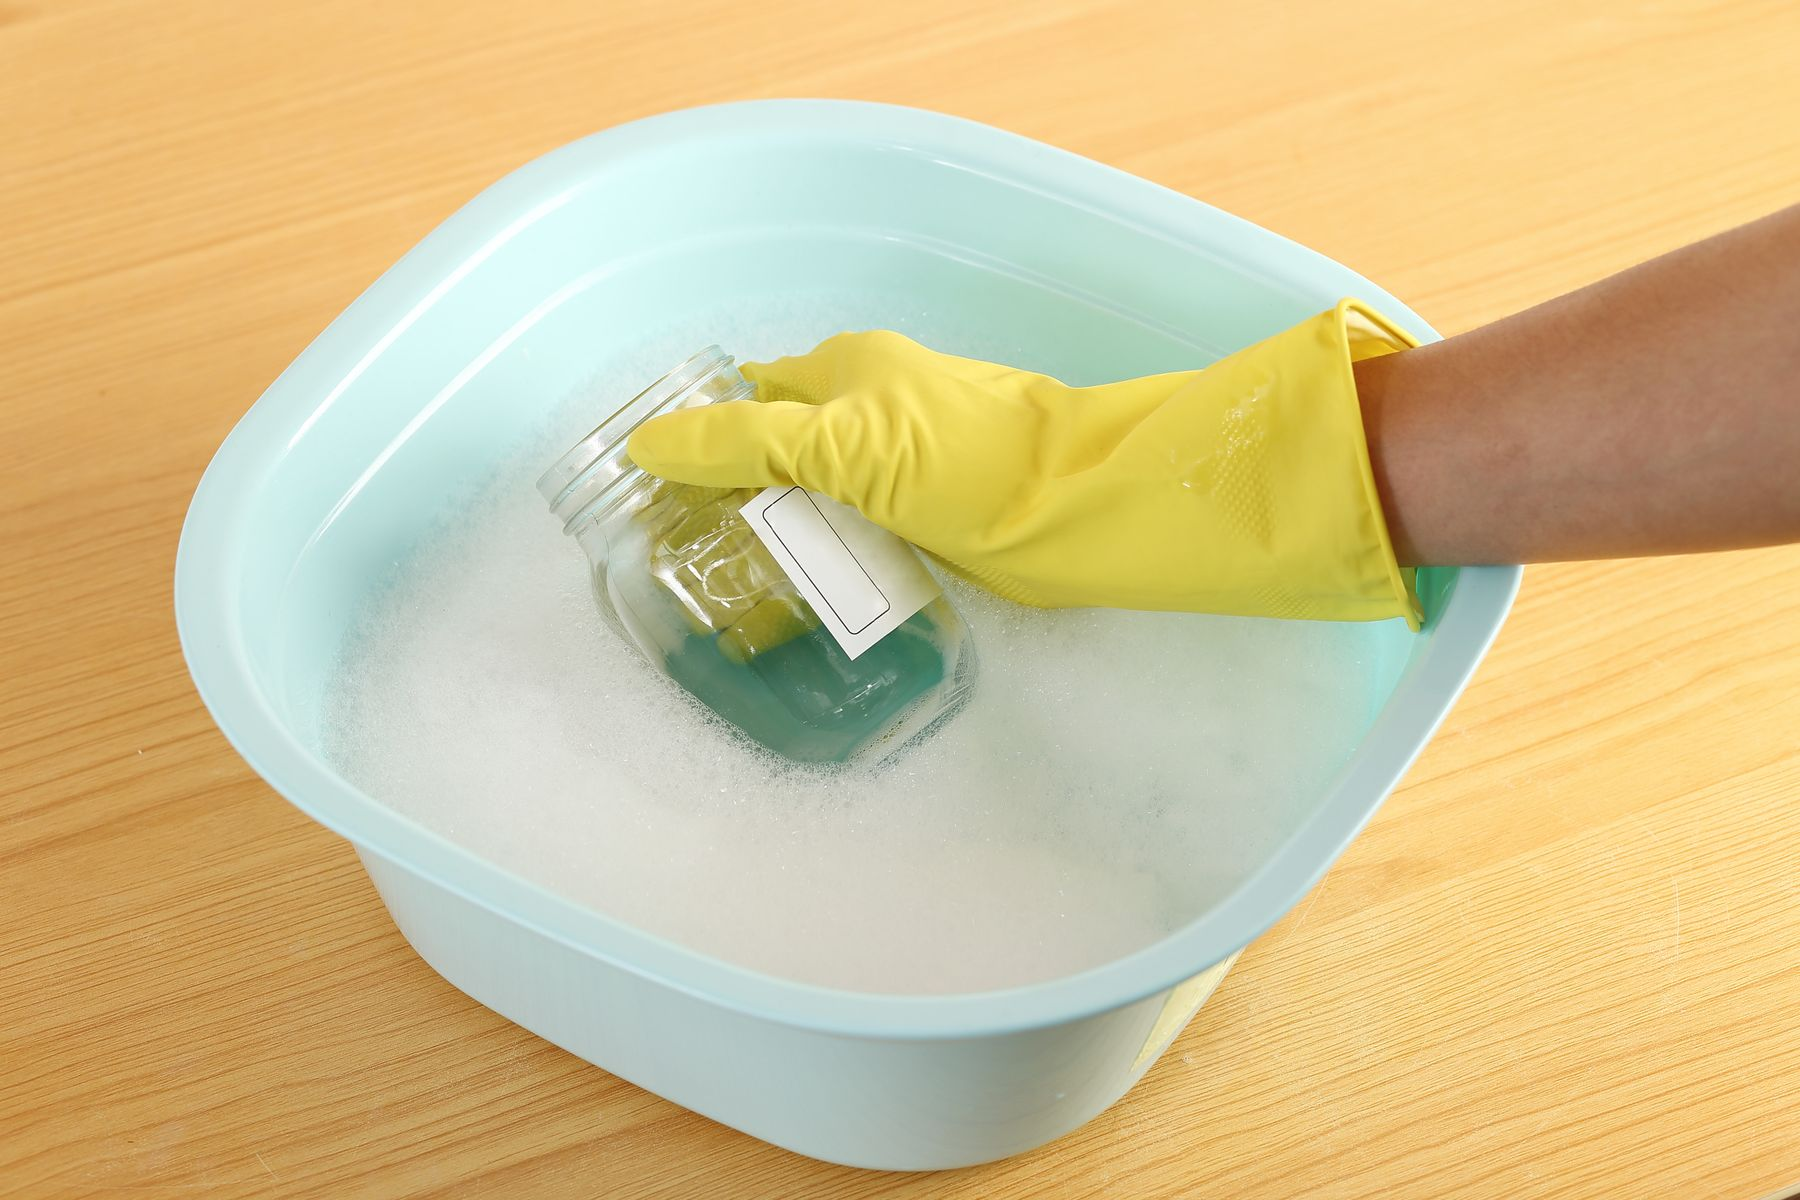 Step 1: Washing a label from a jar in hot soapy water